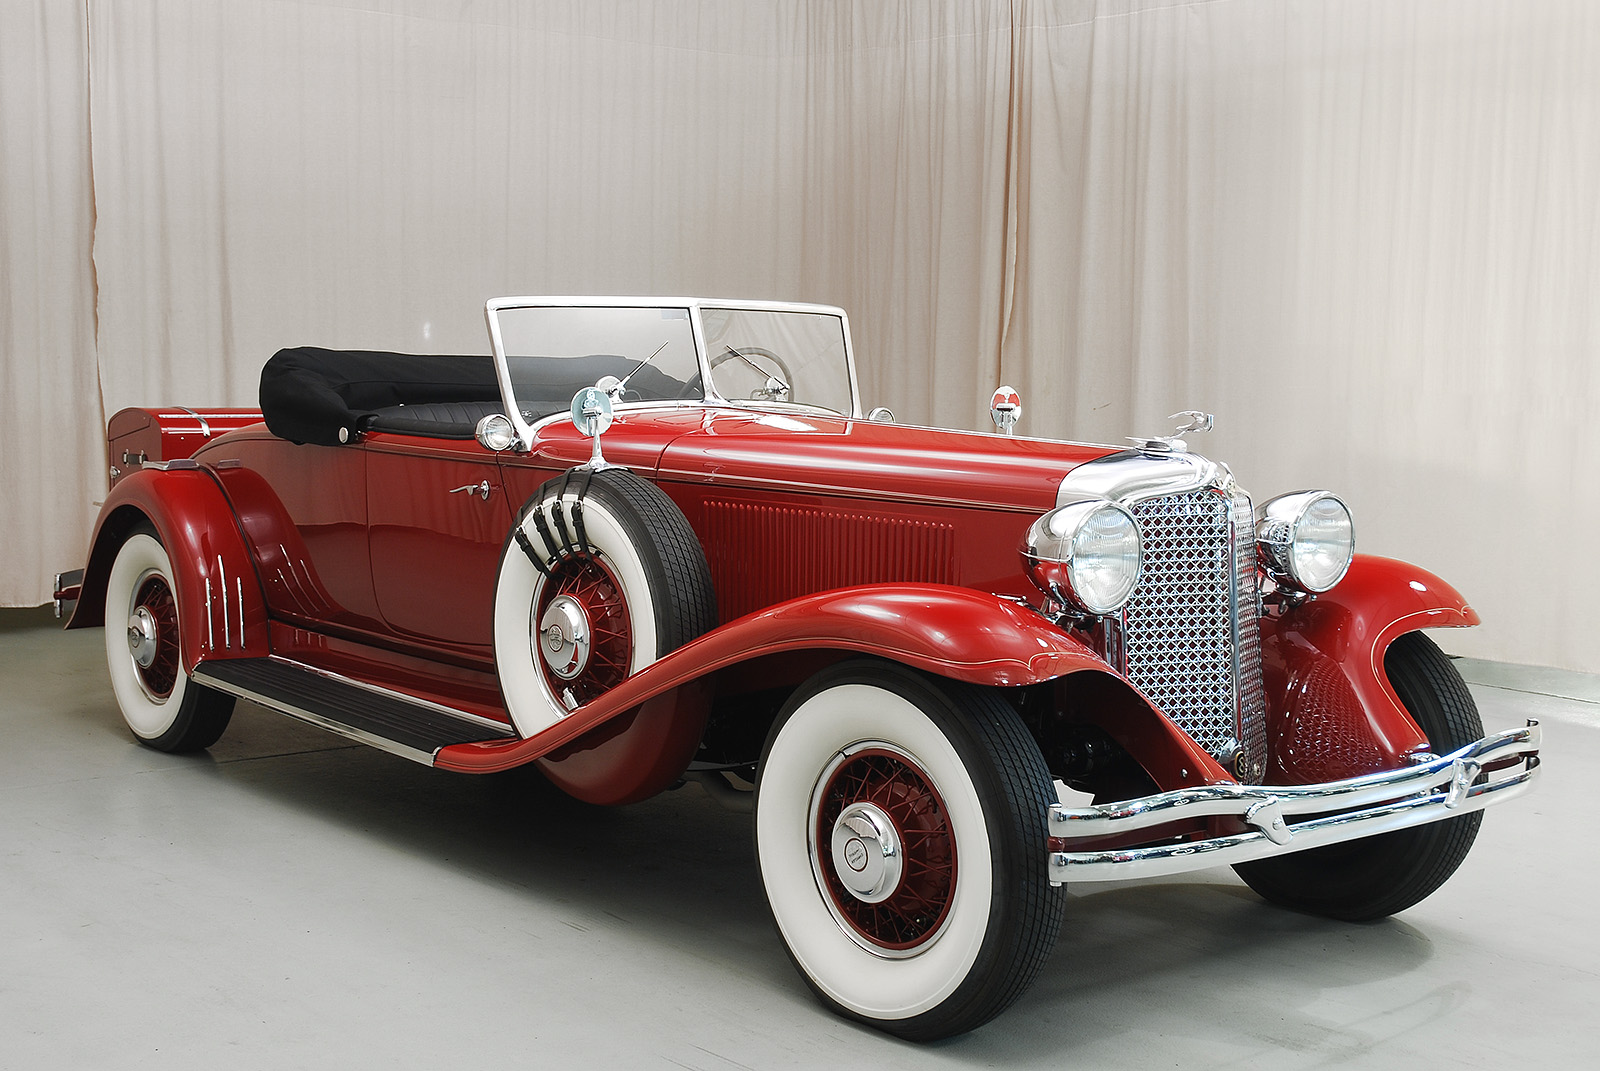 Classic Cars: 1931 Chrysler CG Imperial Roadster